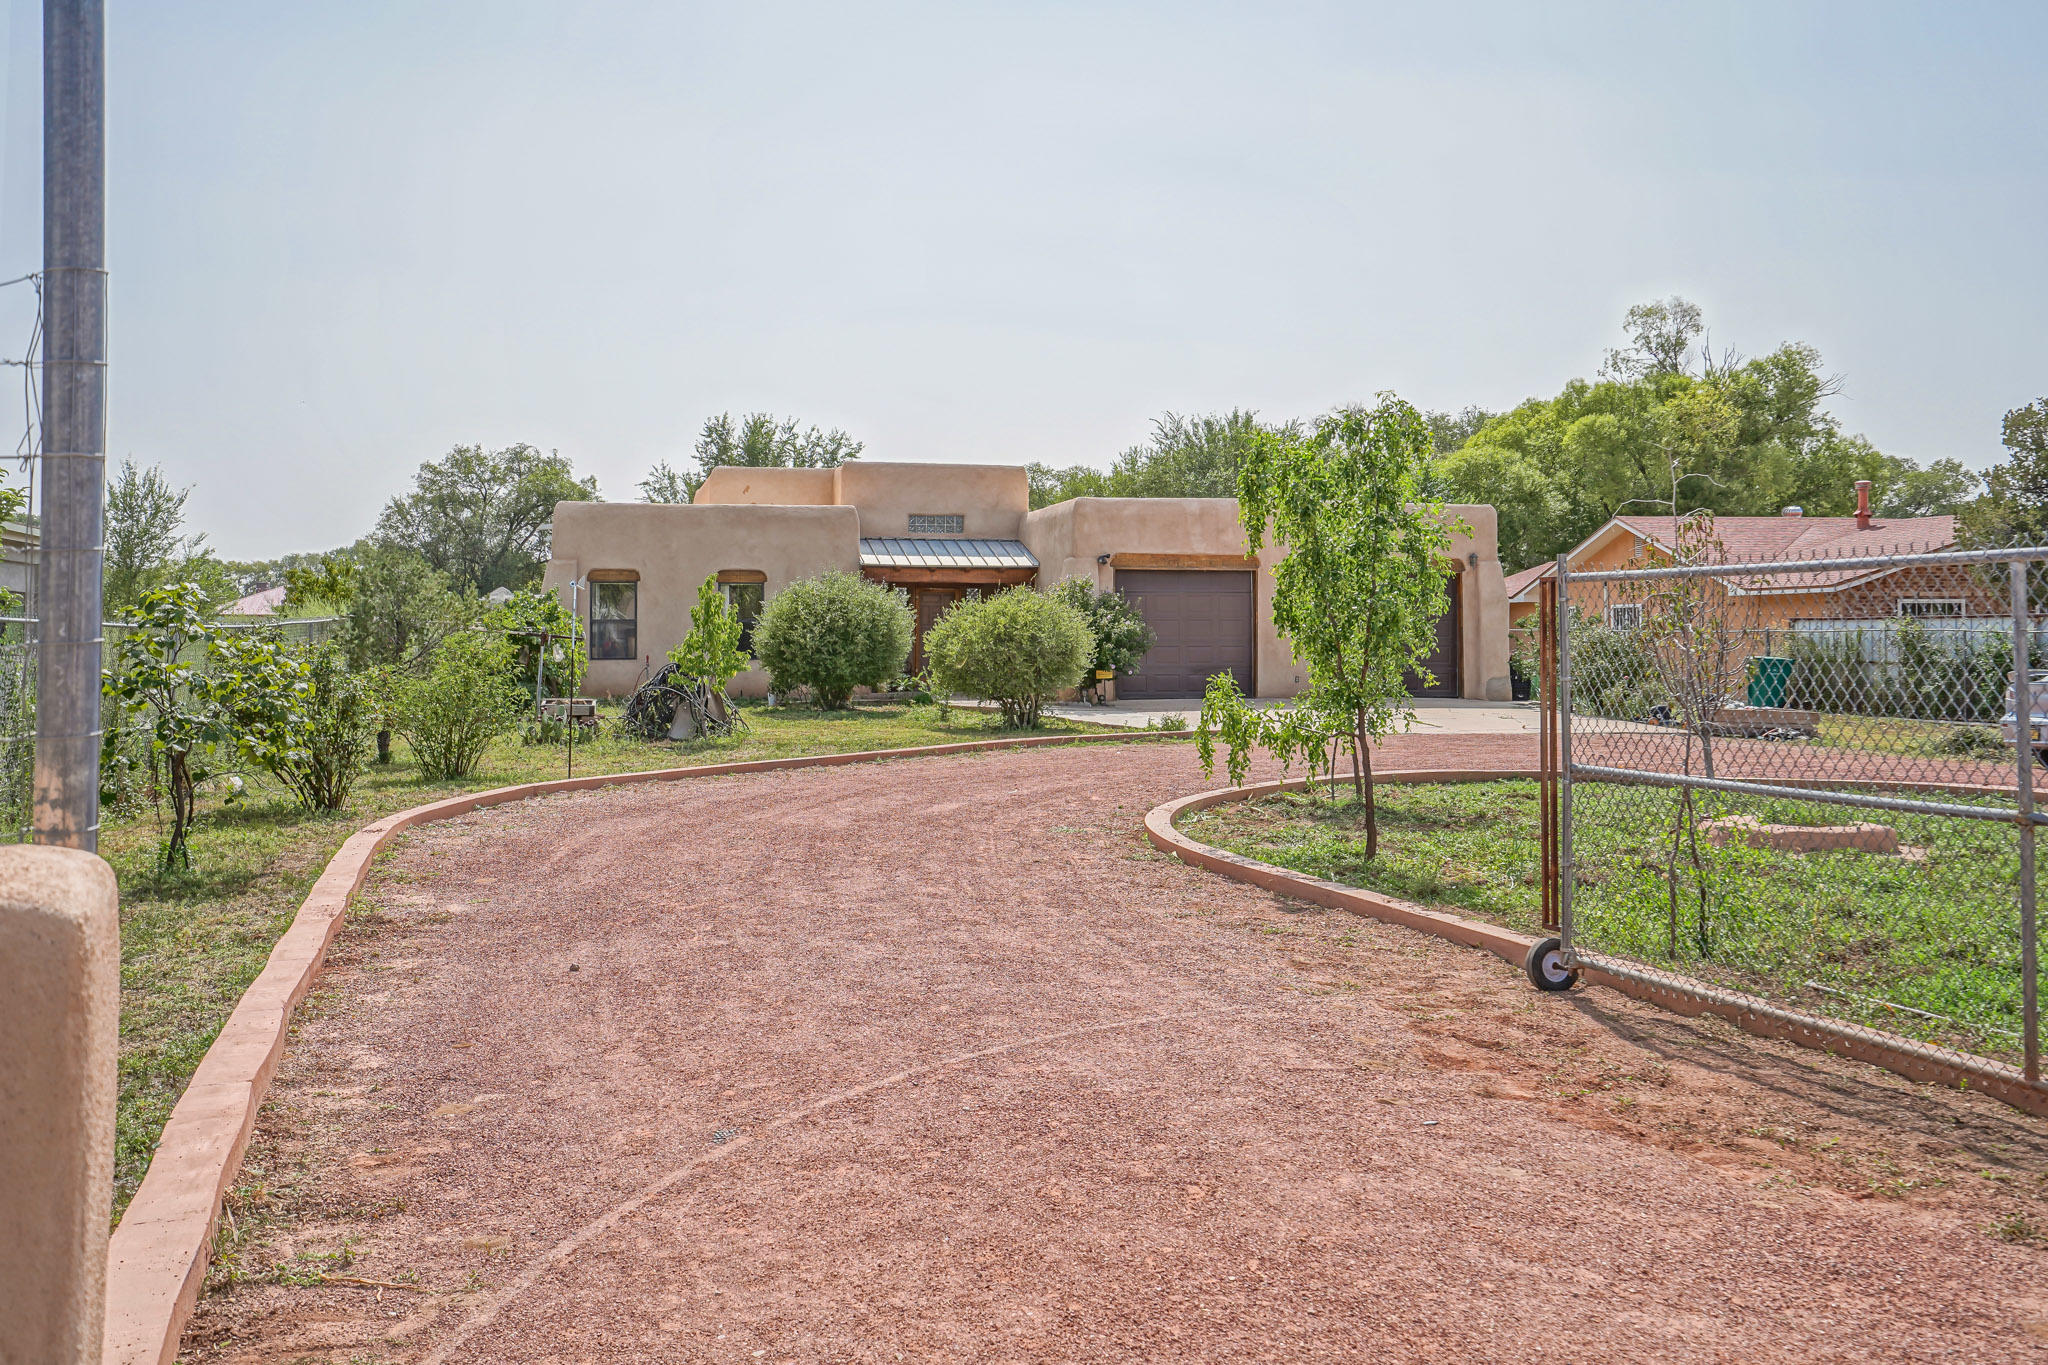 Enjoy the peaceful, green landscape of the South Valley, just minutes from the CNM Campus and a short drive to the Rio Grande.  Beautiful Tall ceilings with vigas, loads of natural light, new laminate floors in the main living space, new carpet and paint all on .7 acres of usable land.  Beautiful circular driveway and tons of options to landscape your private oasis on this large lot with a country feel.  Relax in your private master suite with a large walk in closet and full master bathroom with jetted tub, separate shower, double sinks and more natural light!  Enclosed patio offers additional living space for parties and relaxing.  Large garden areas where you can grow your own vegetables!  The garage features a double long space with a drive through to the back. RV Parking.